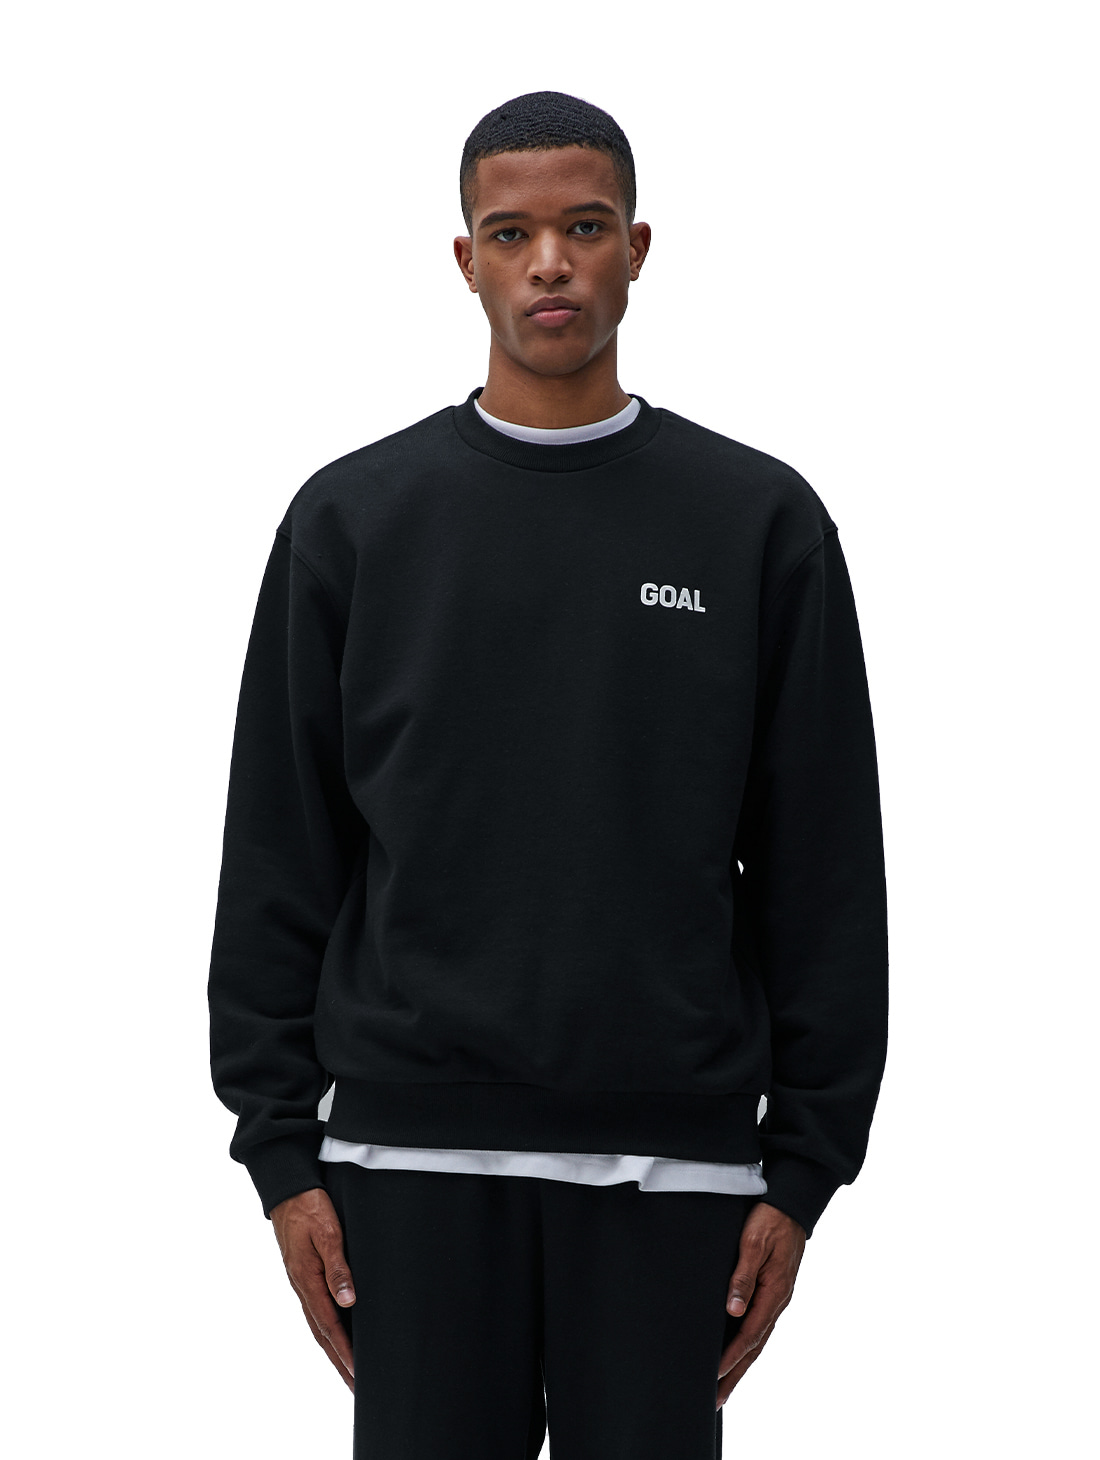 GOALSTUDIO (Sold Out) FLOCKING SWEATSHIRT - BLACK